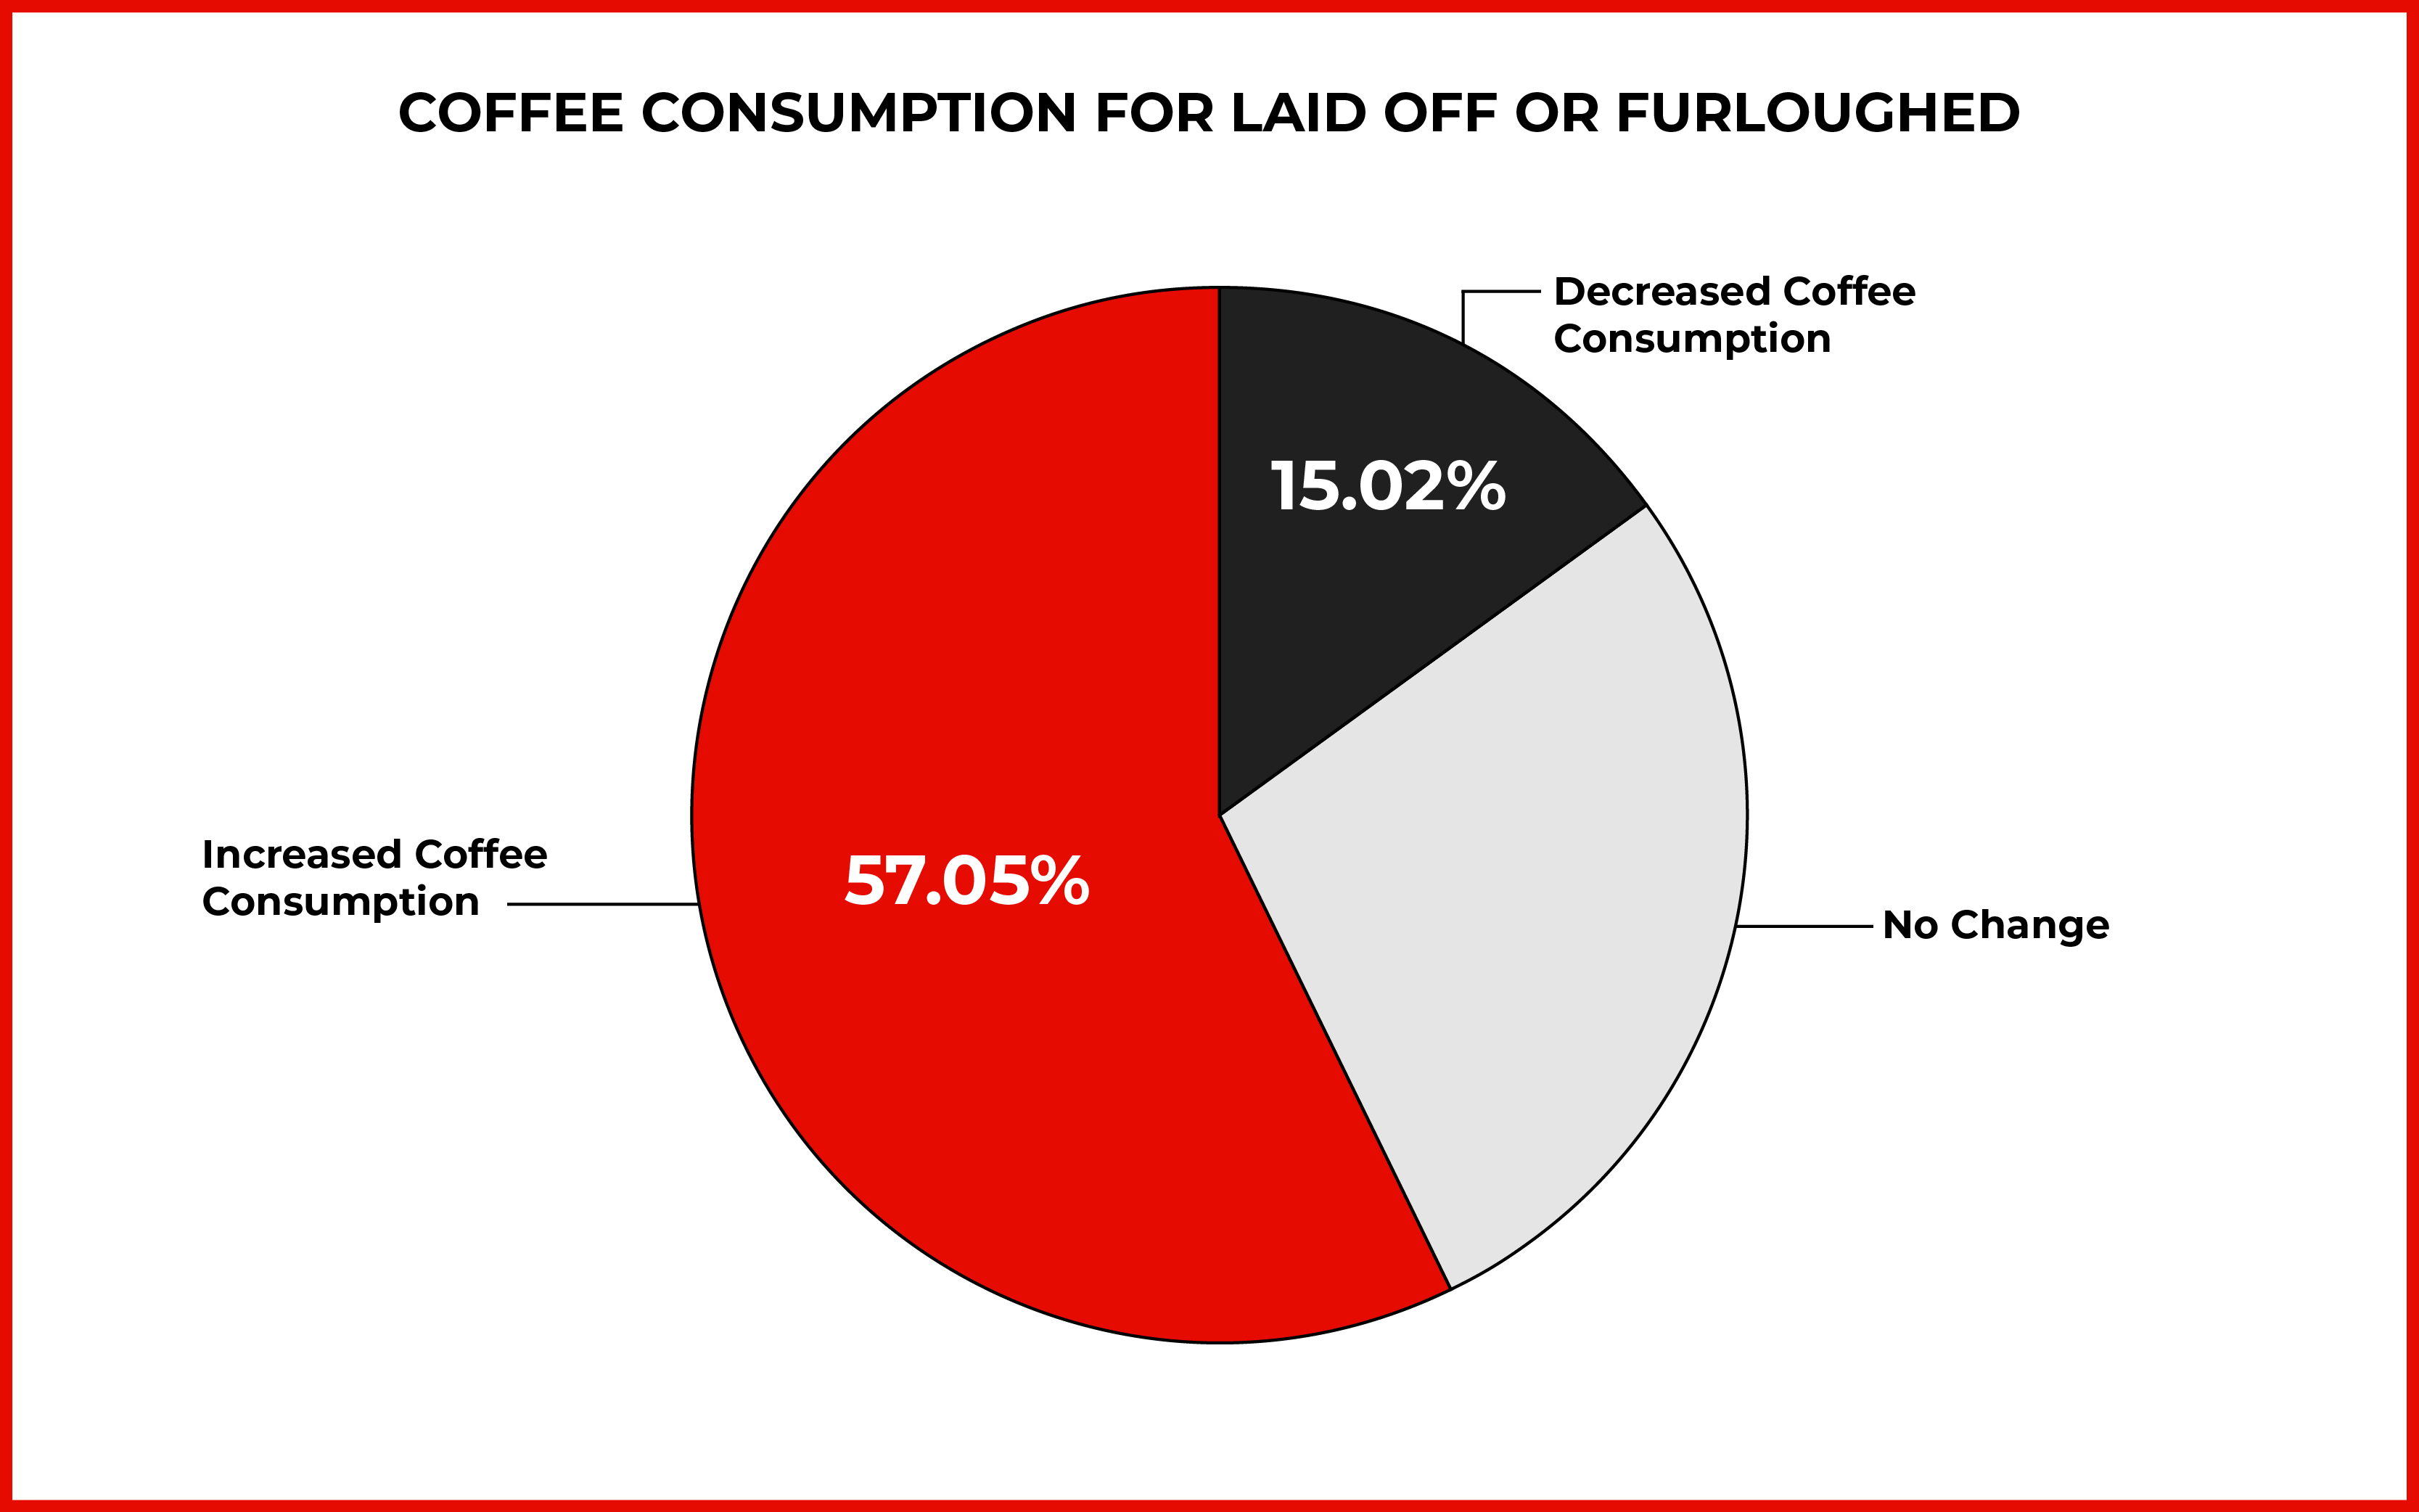 Pie chart of coffee consumption for those laid off or furloughed due to COVID19, with 57.05% saying their consumption increased